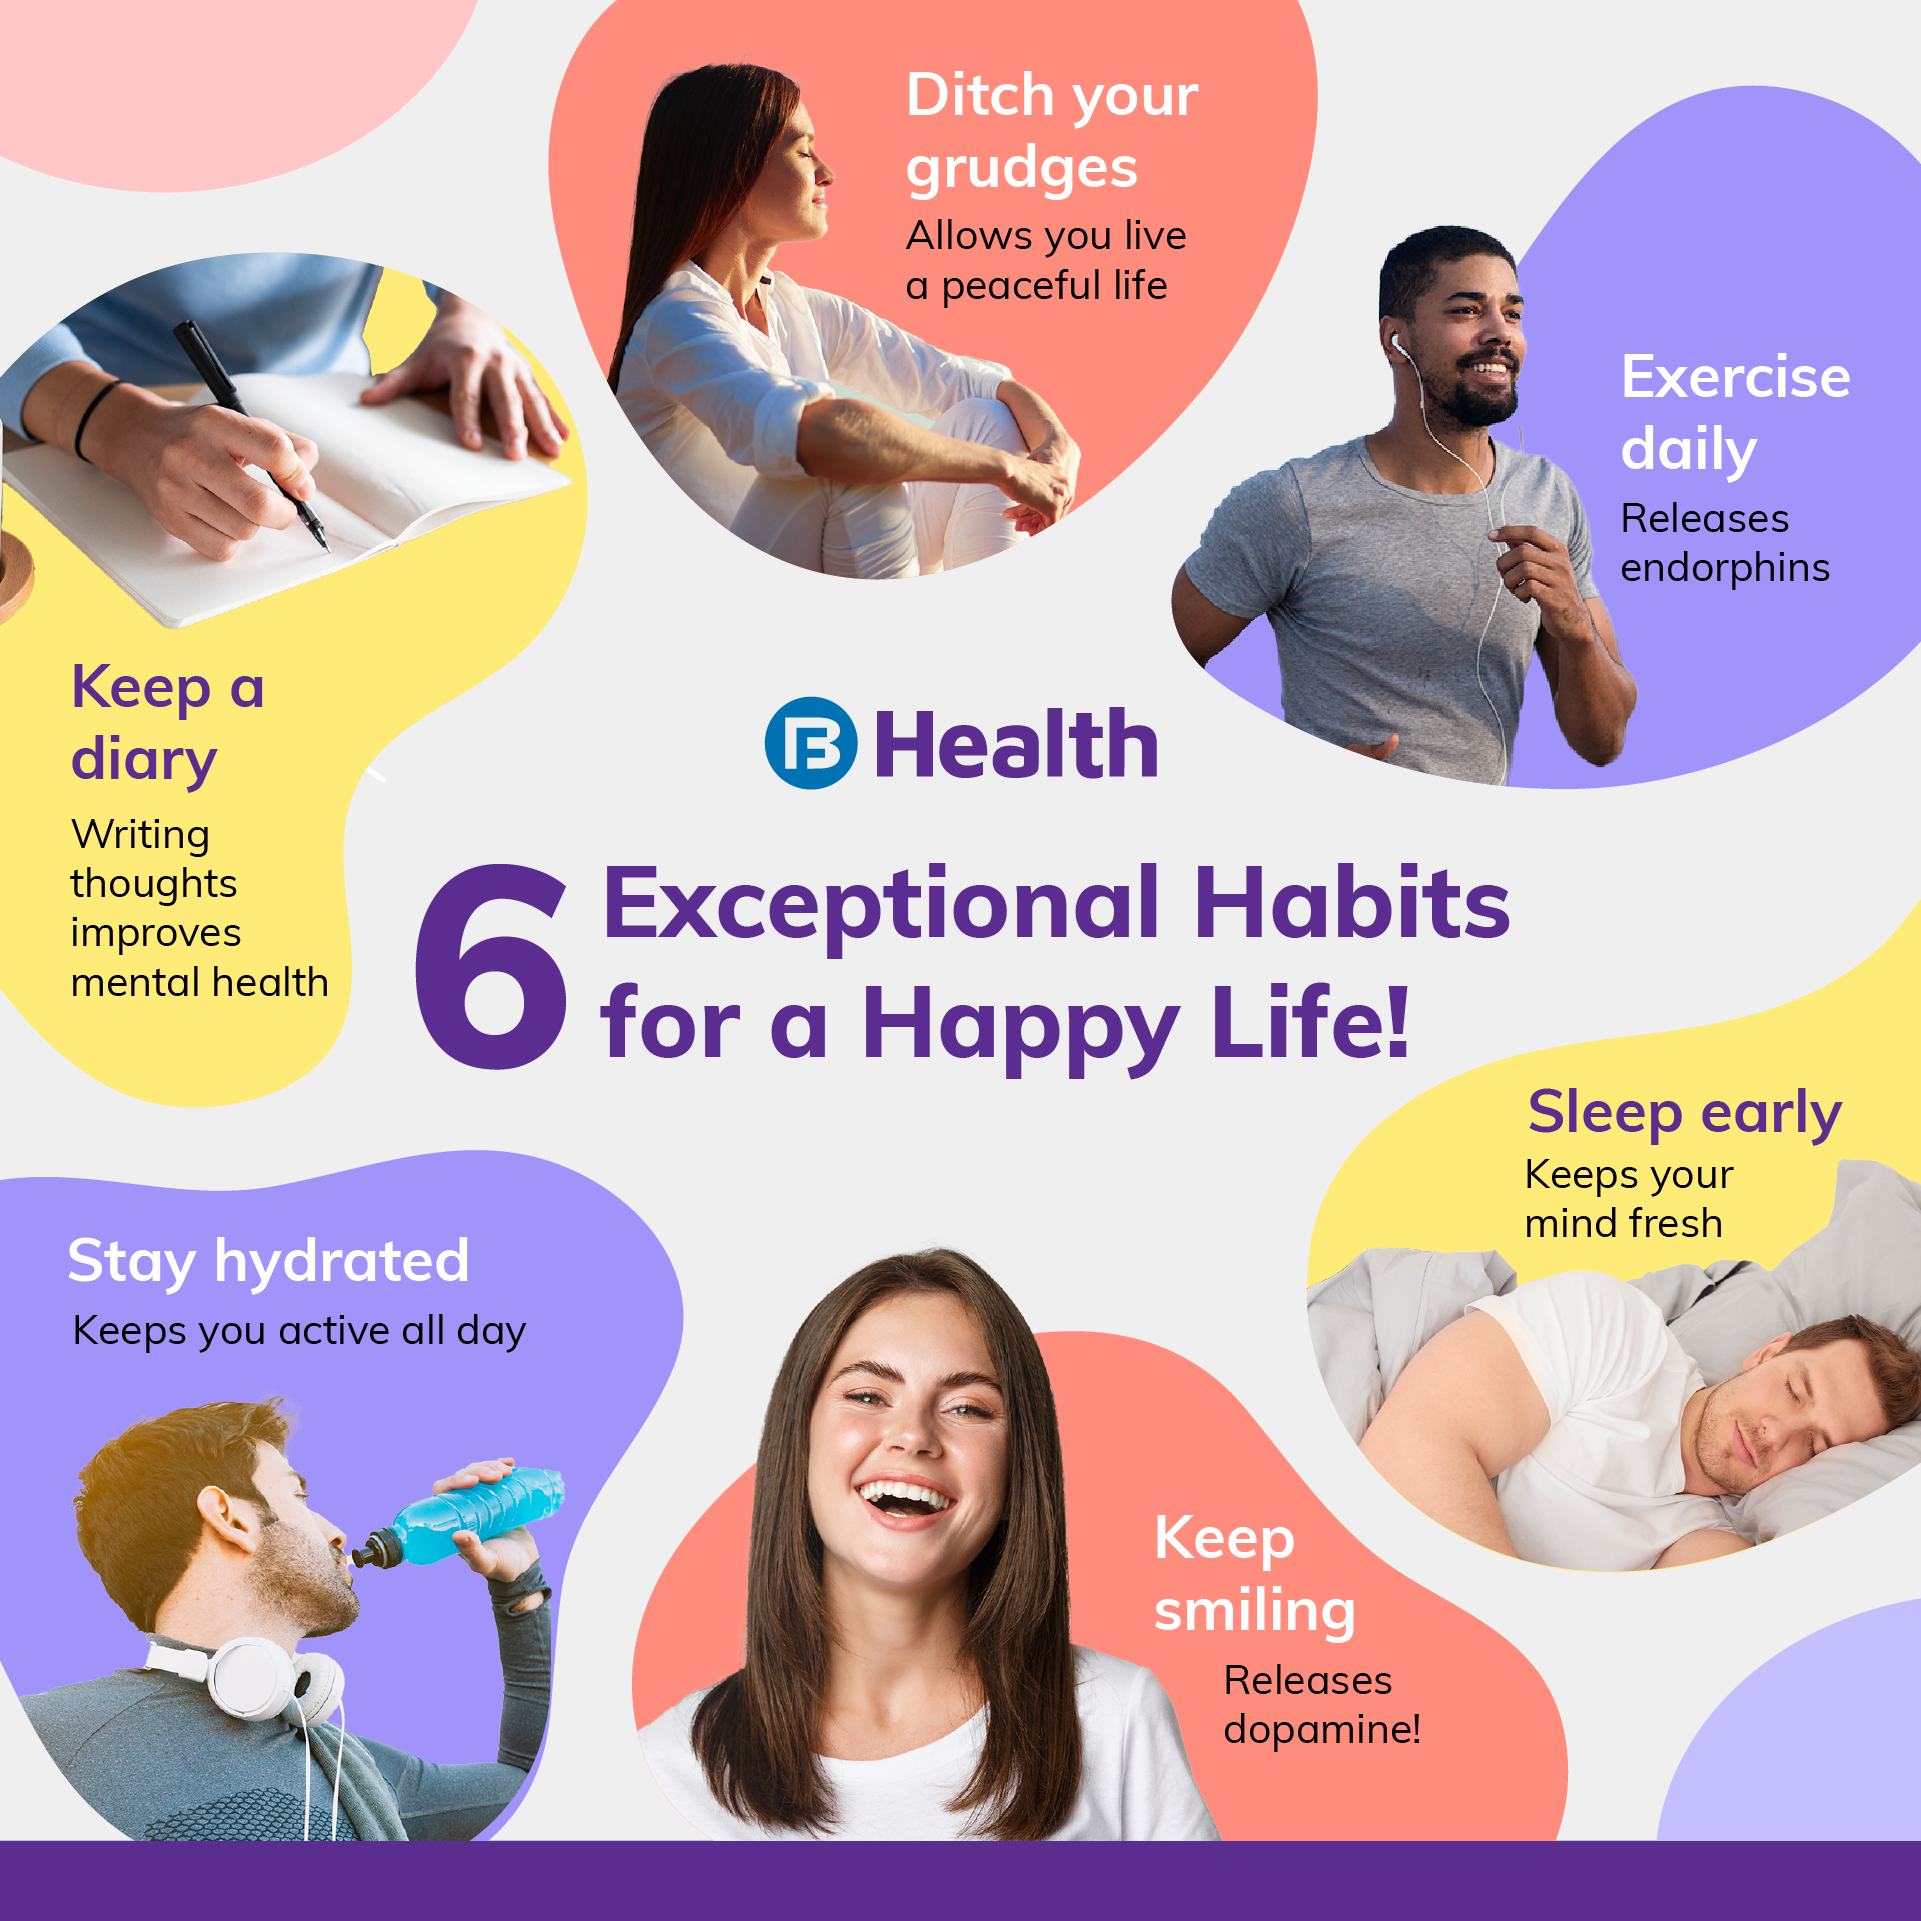 6 tips for a happy life